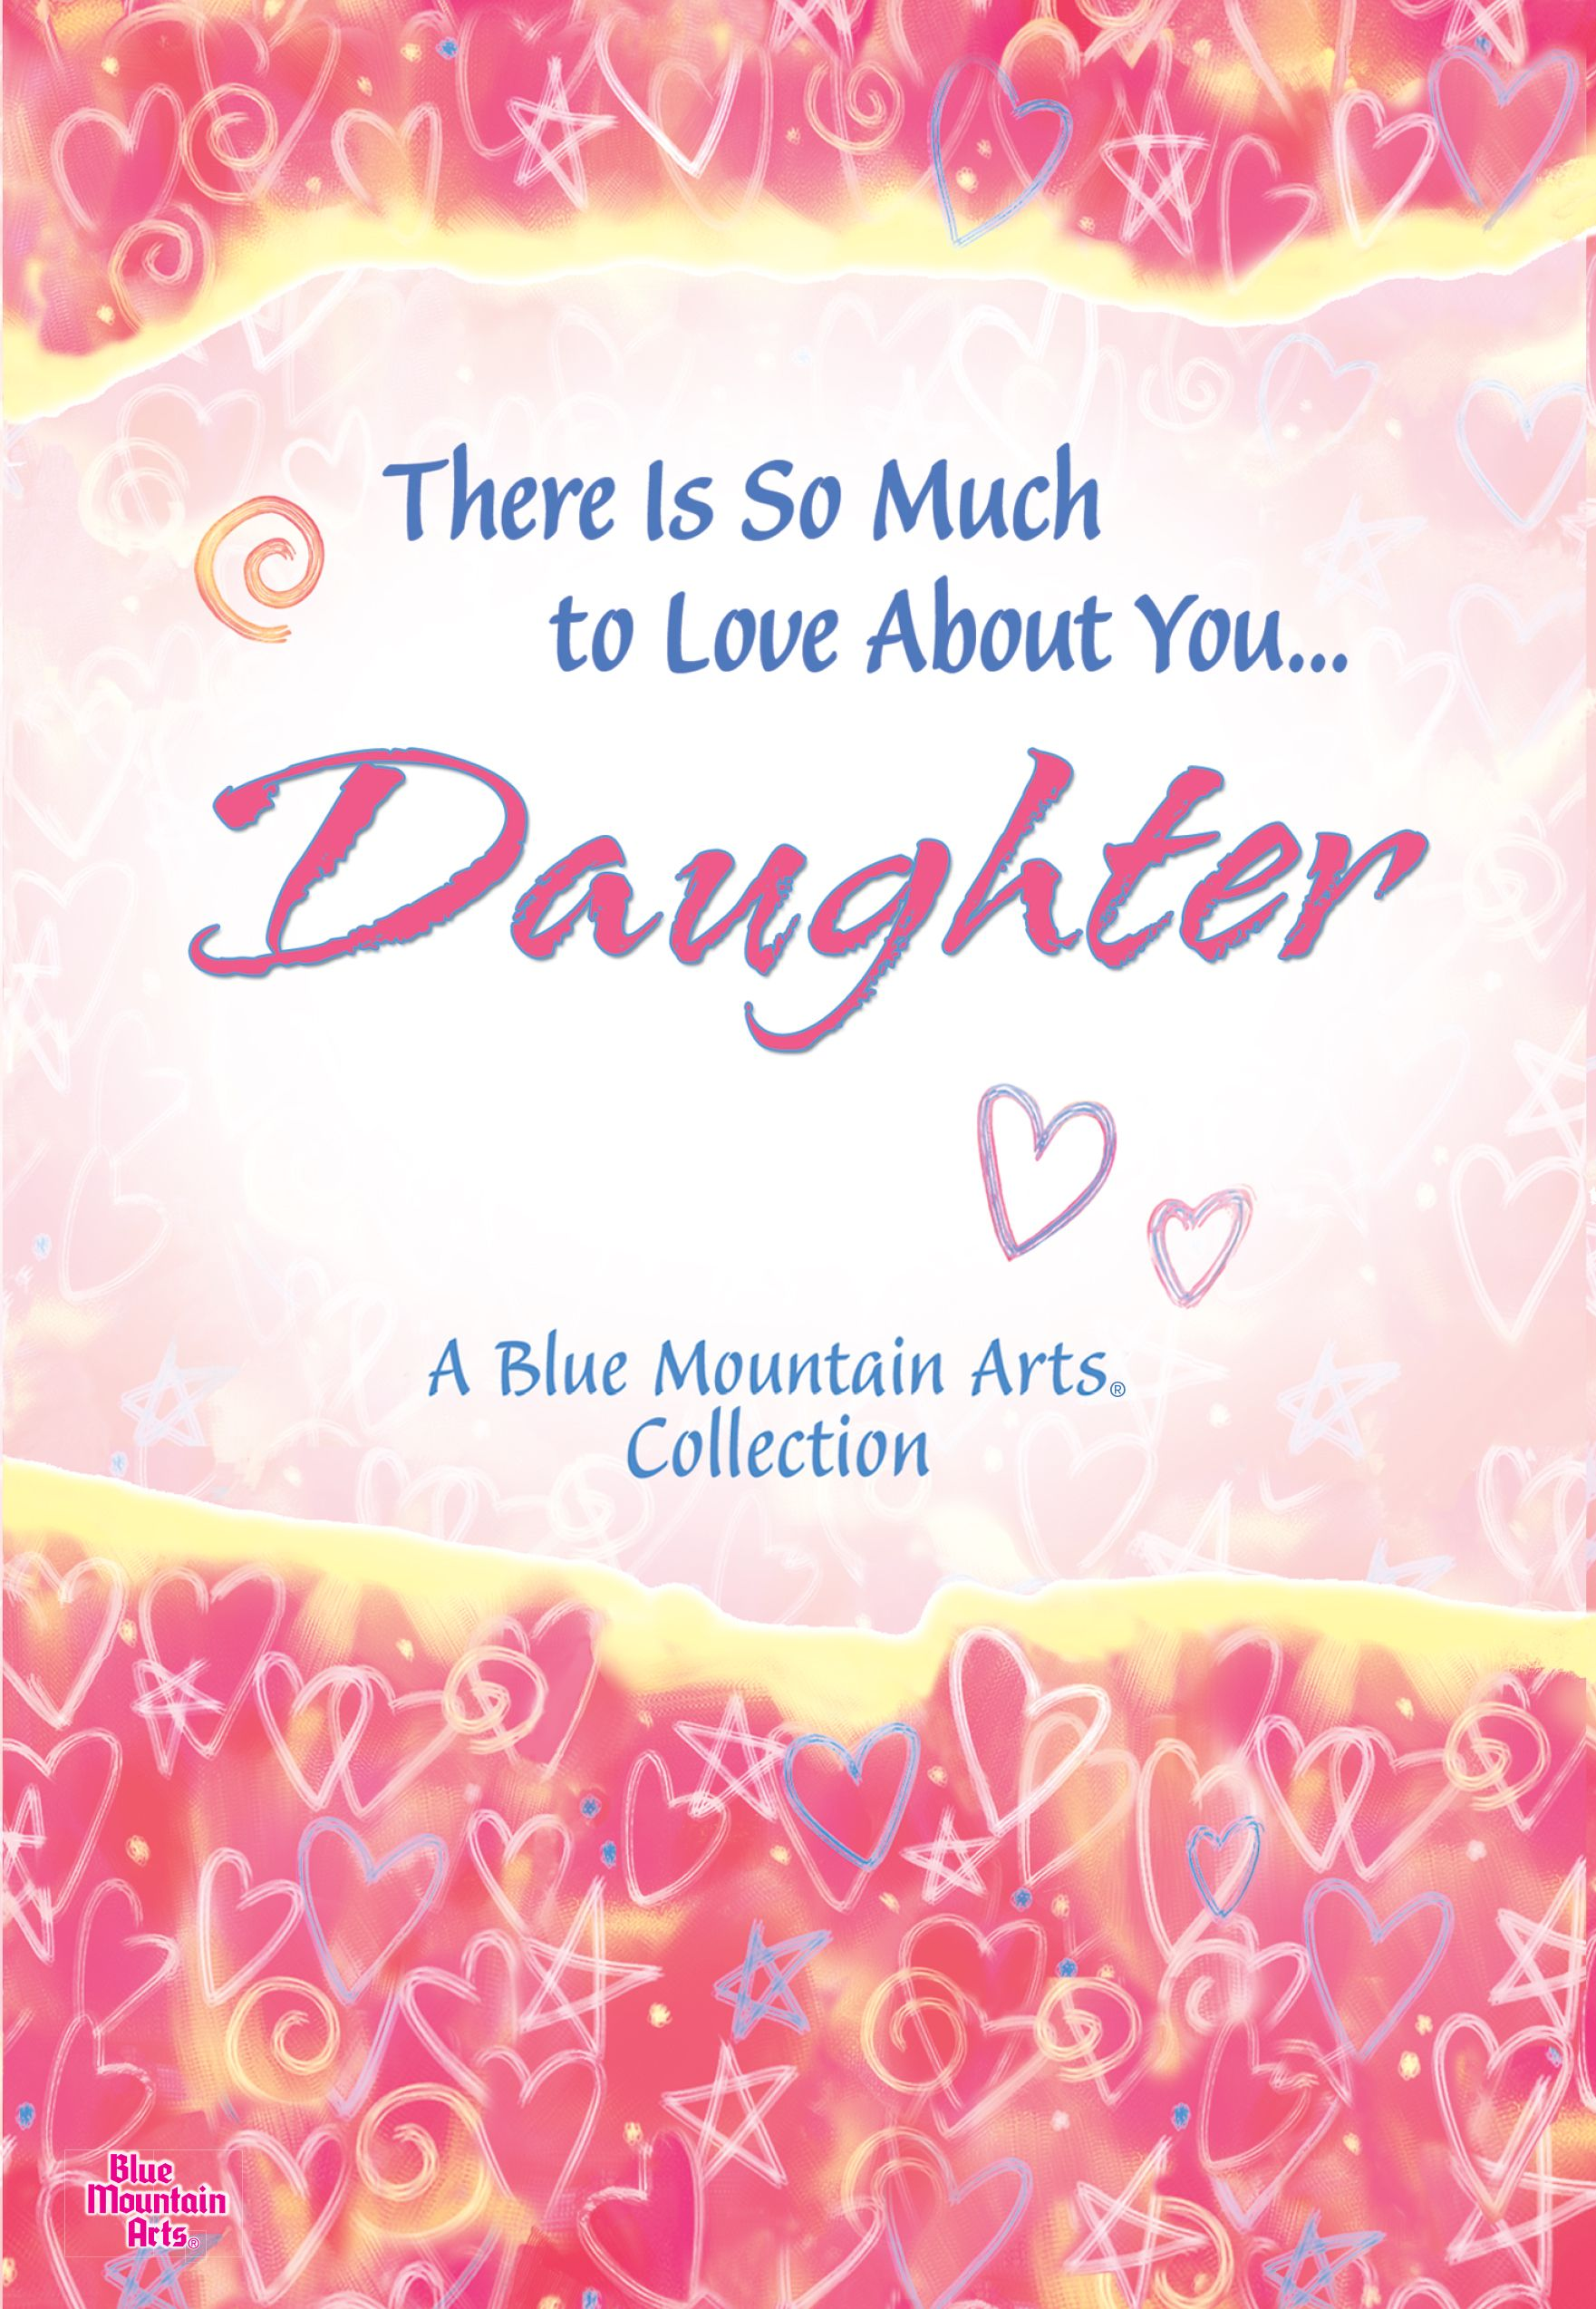 This Blue Mountain Arts collection brings to her some of the